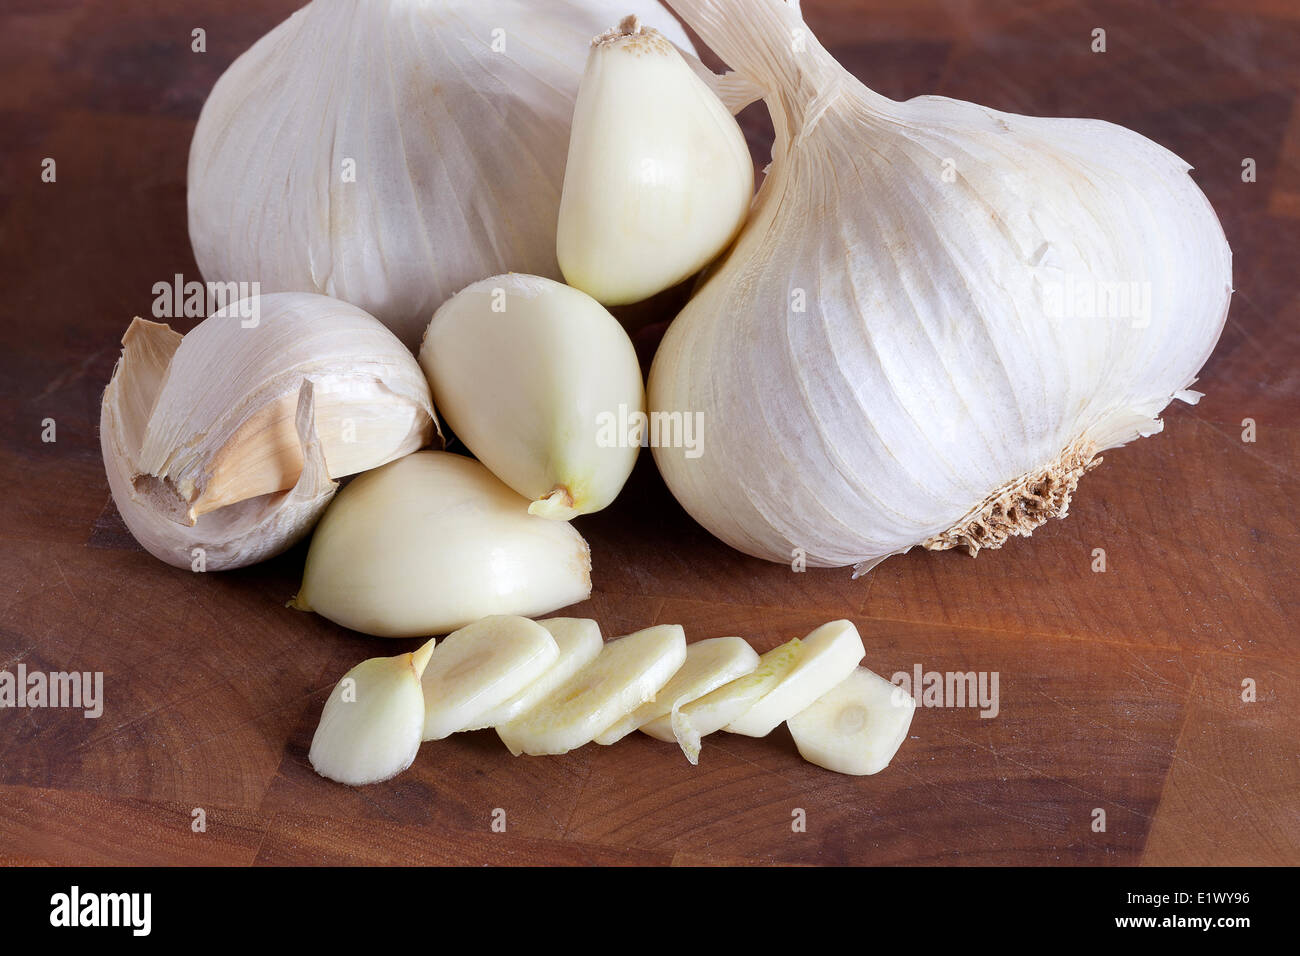 Sliced and whole garlic cloves on a wooden cutting board - Stock Image